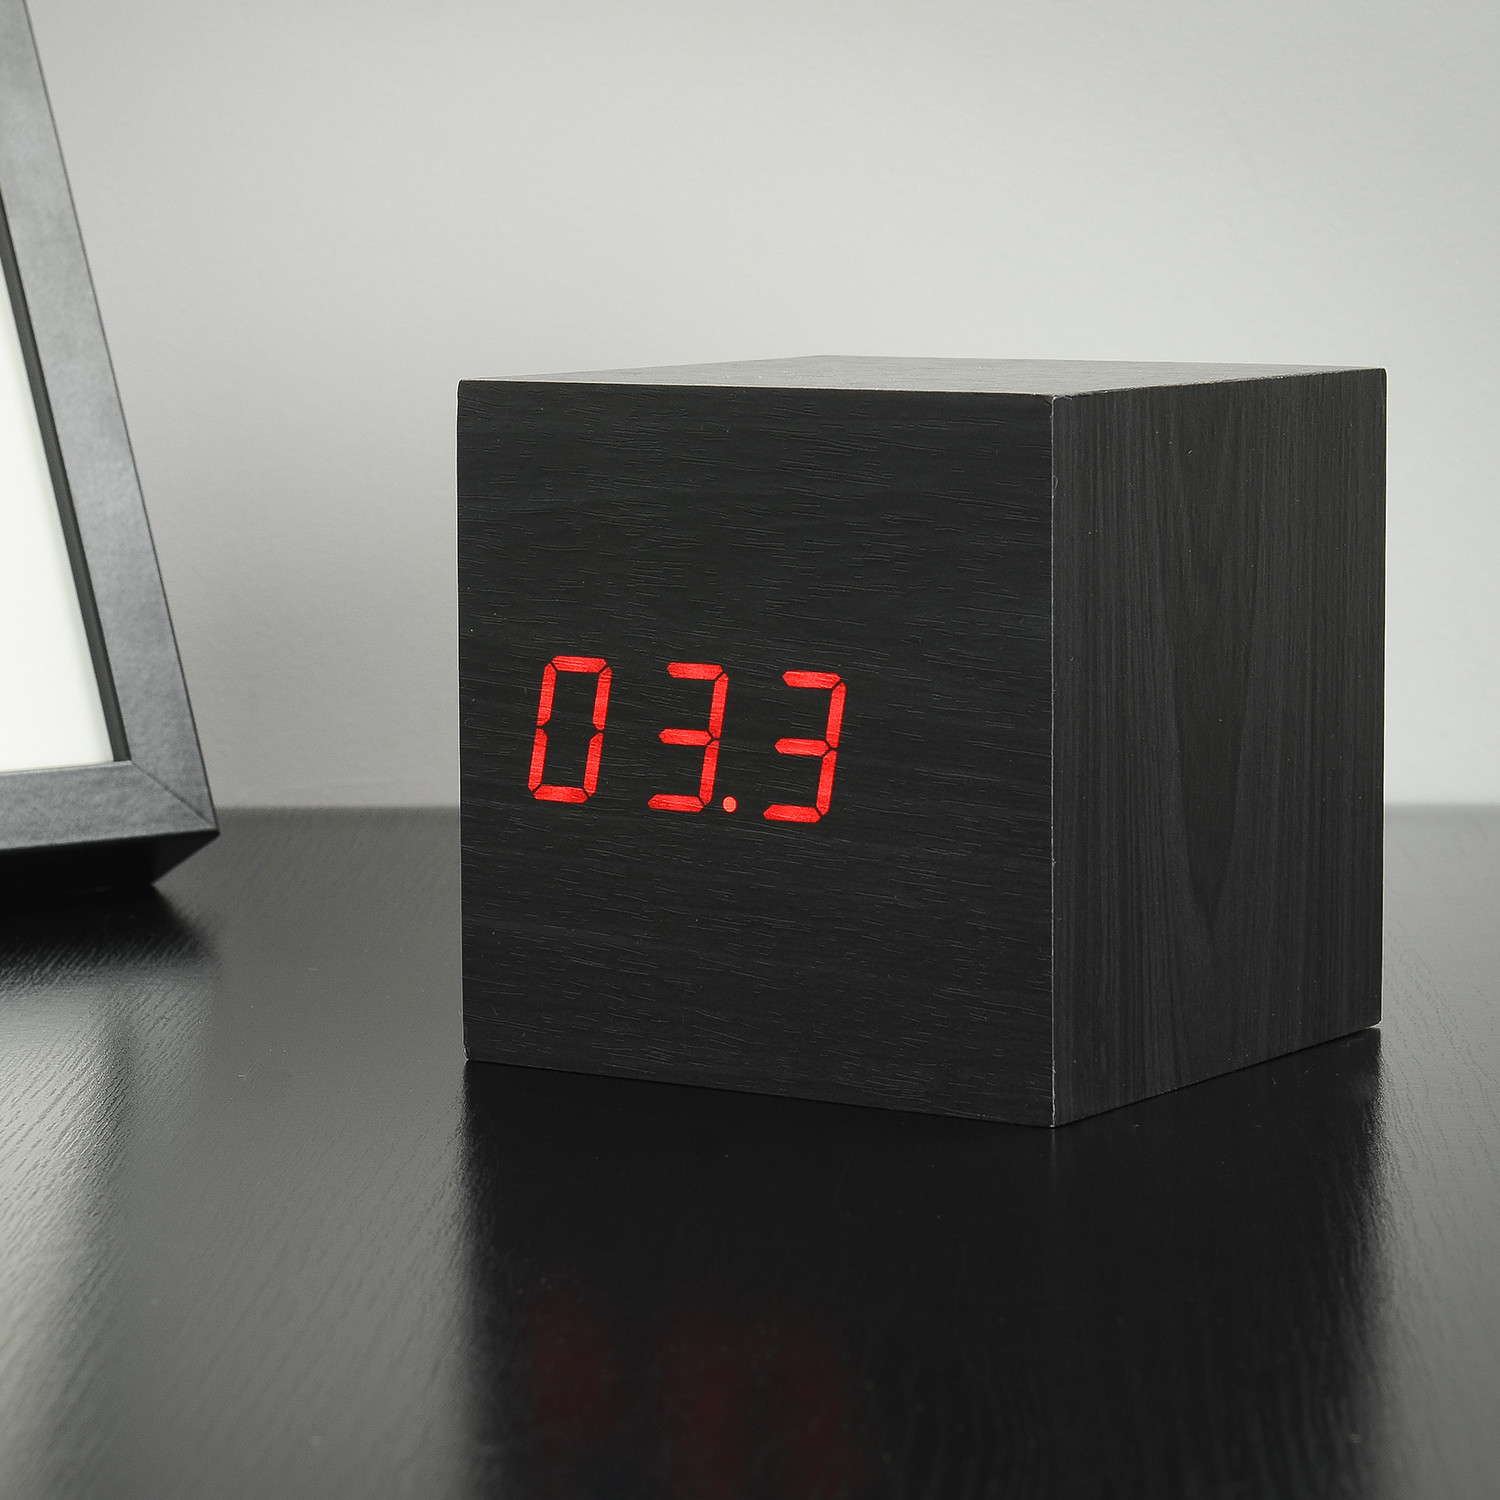 maxi cube click clock red led black gingko eco. Black Bedroom Furniture Sets. Home Design Ideas